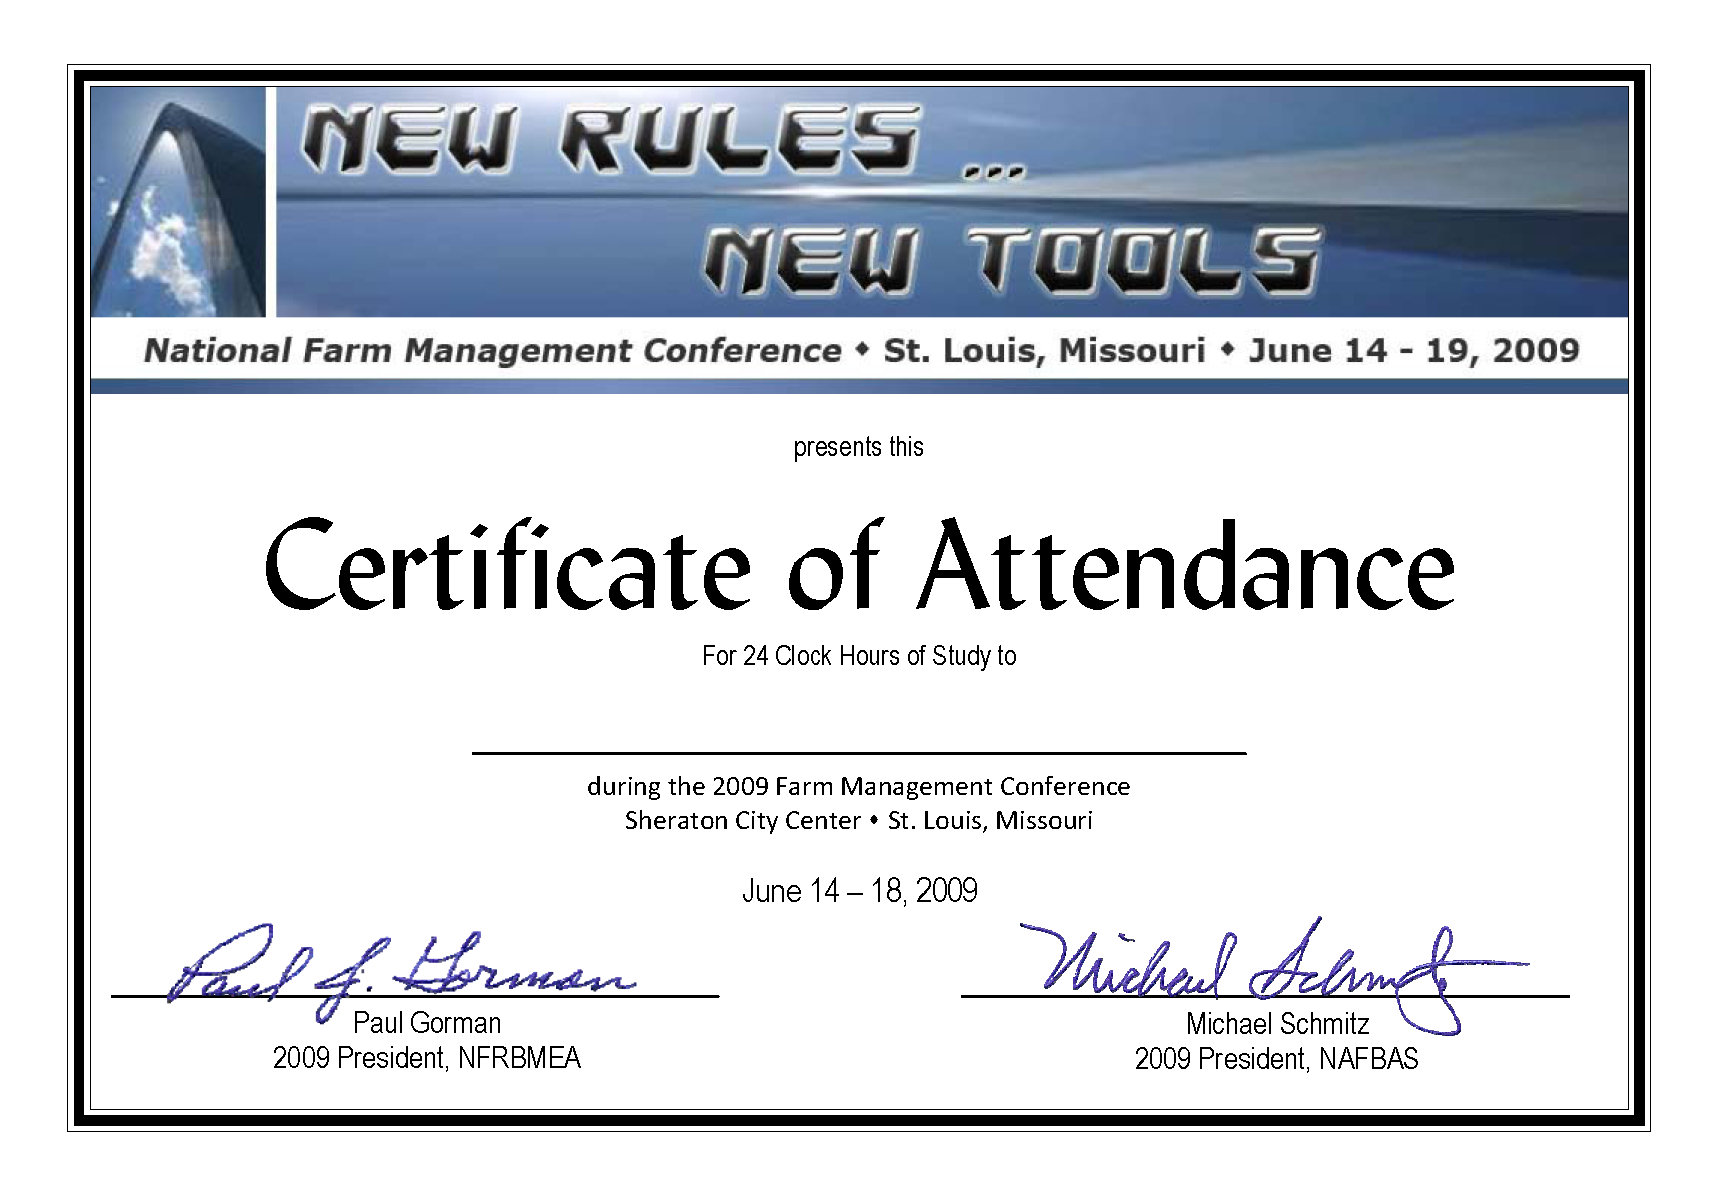 Conference Certificate Of Attendance Template  Best within Free Certificate Of Attendance Conference Template